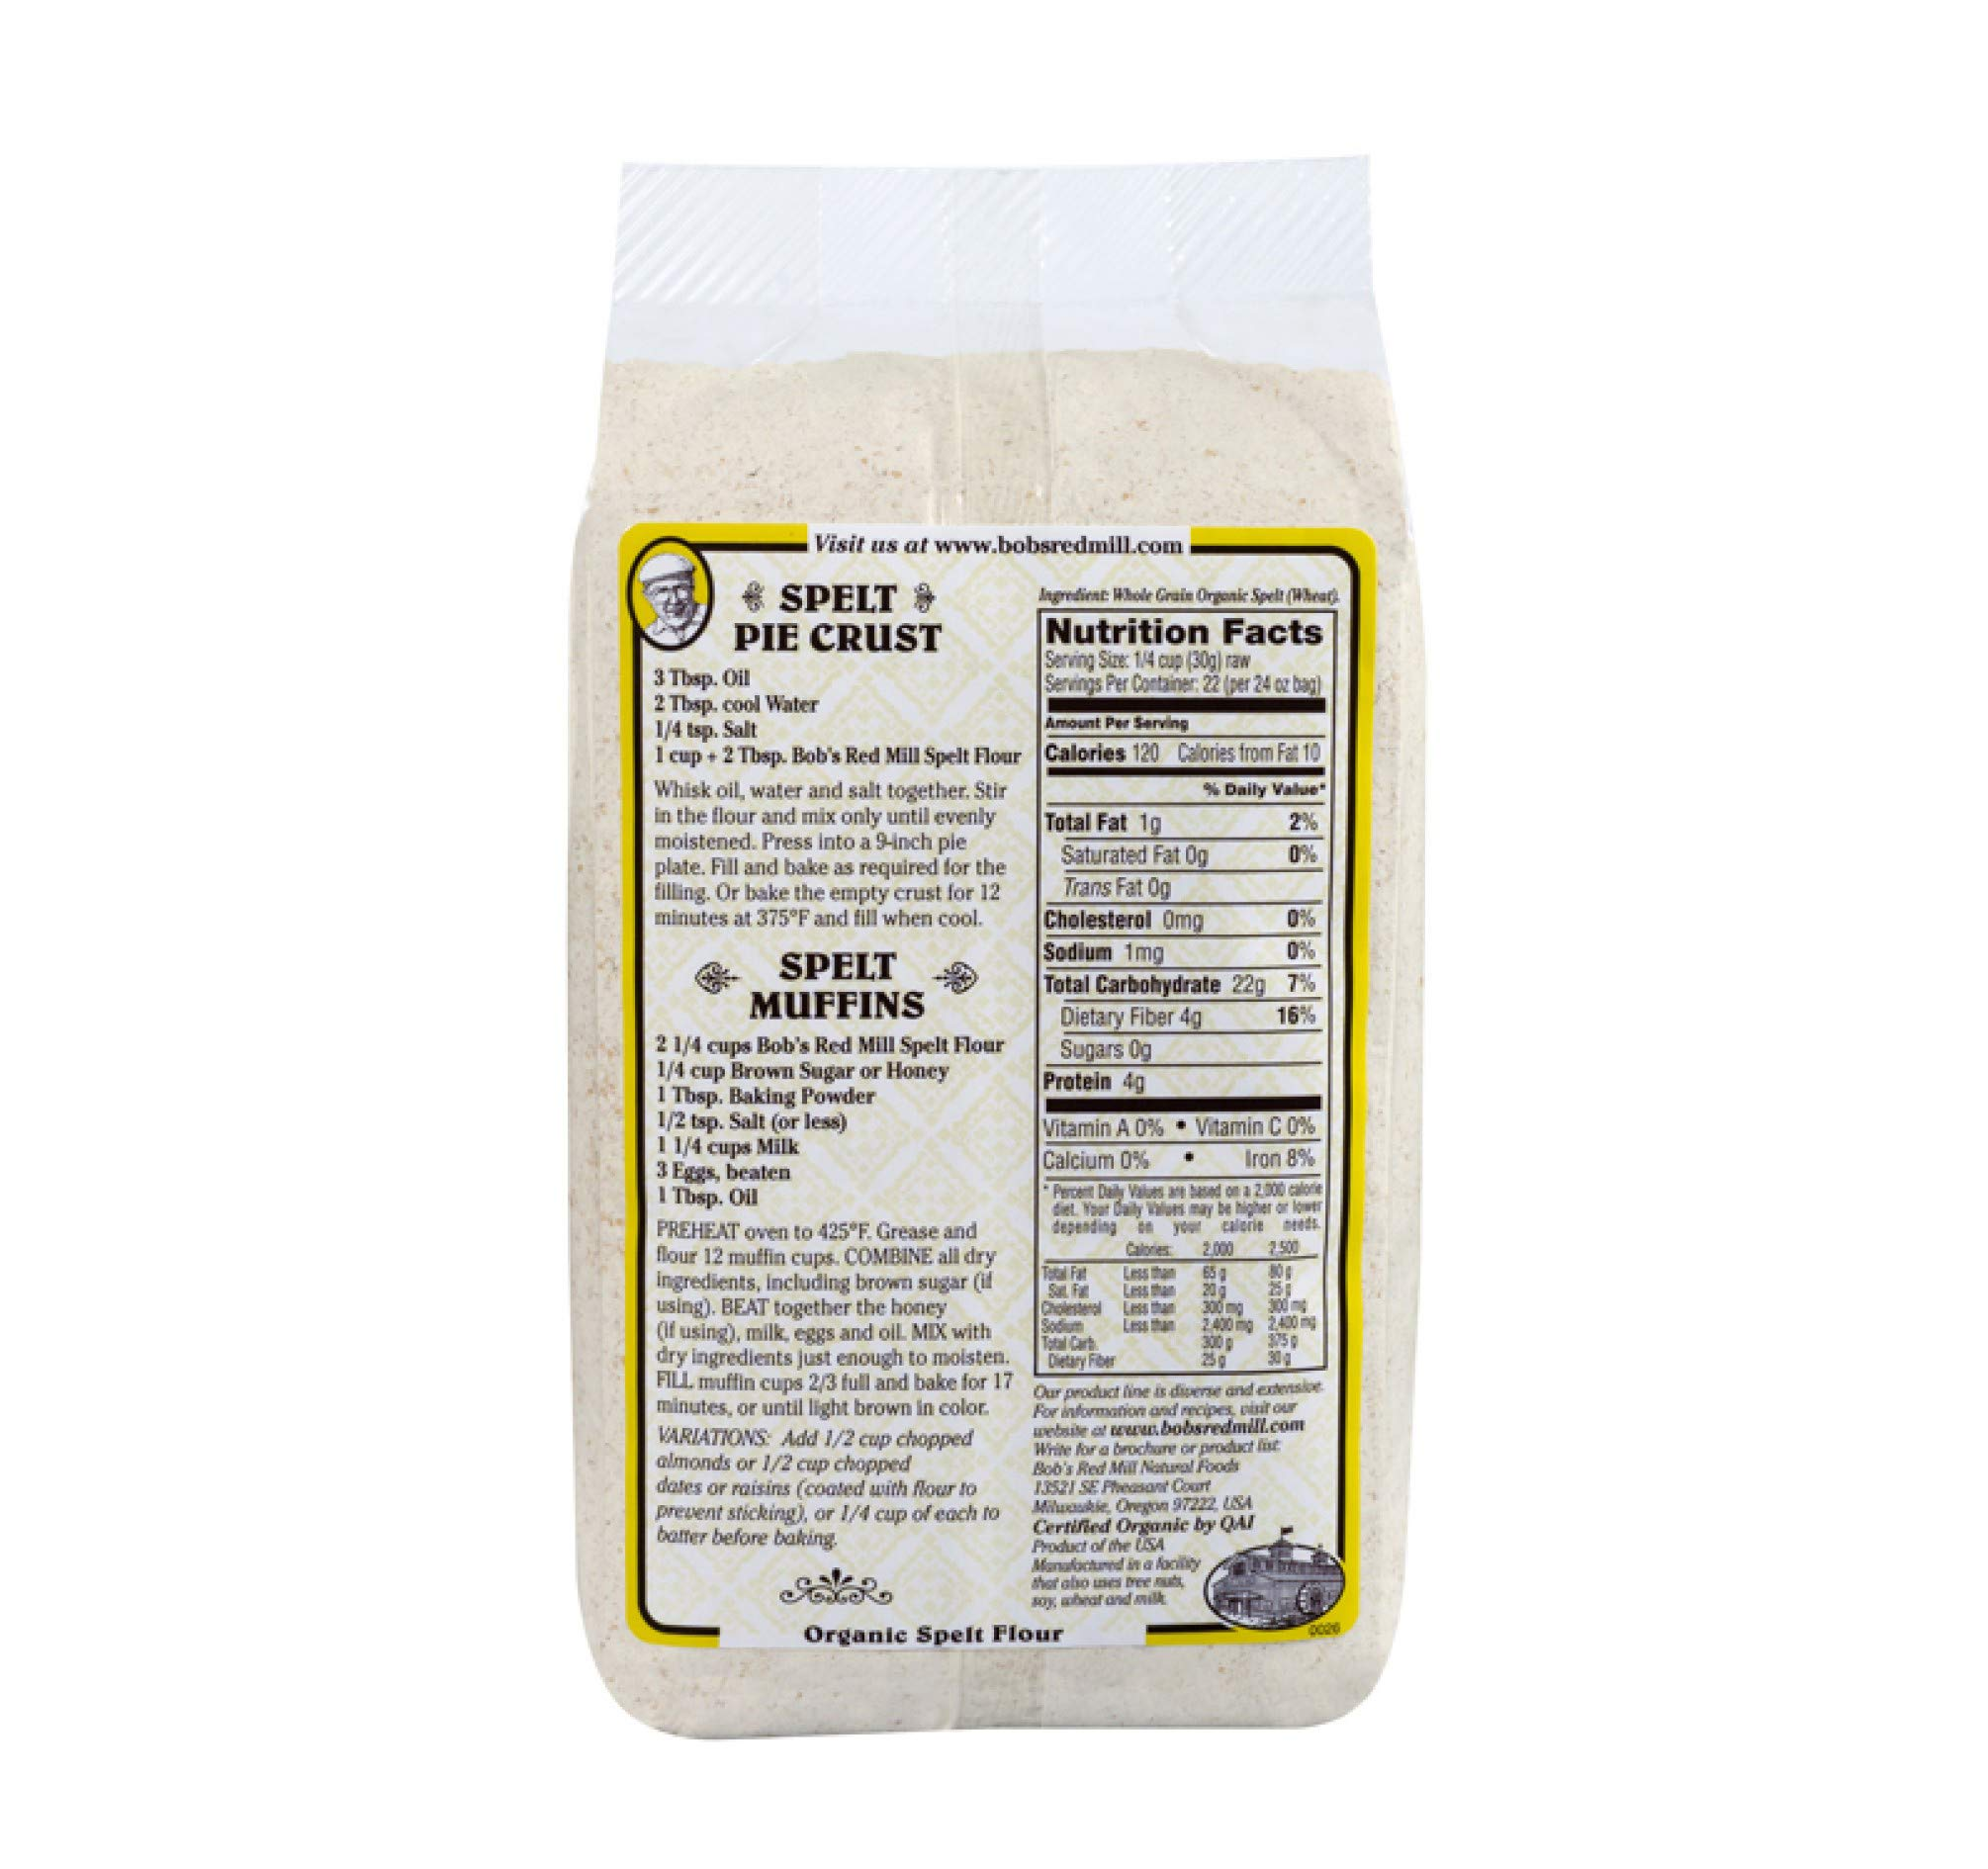 Bob's Red Mill Organic Spelt Flour, 24-ounce (Pack of 4) by Bob's Red Mill (Image #2)